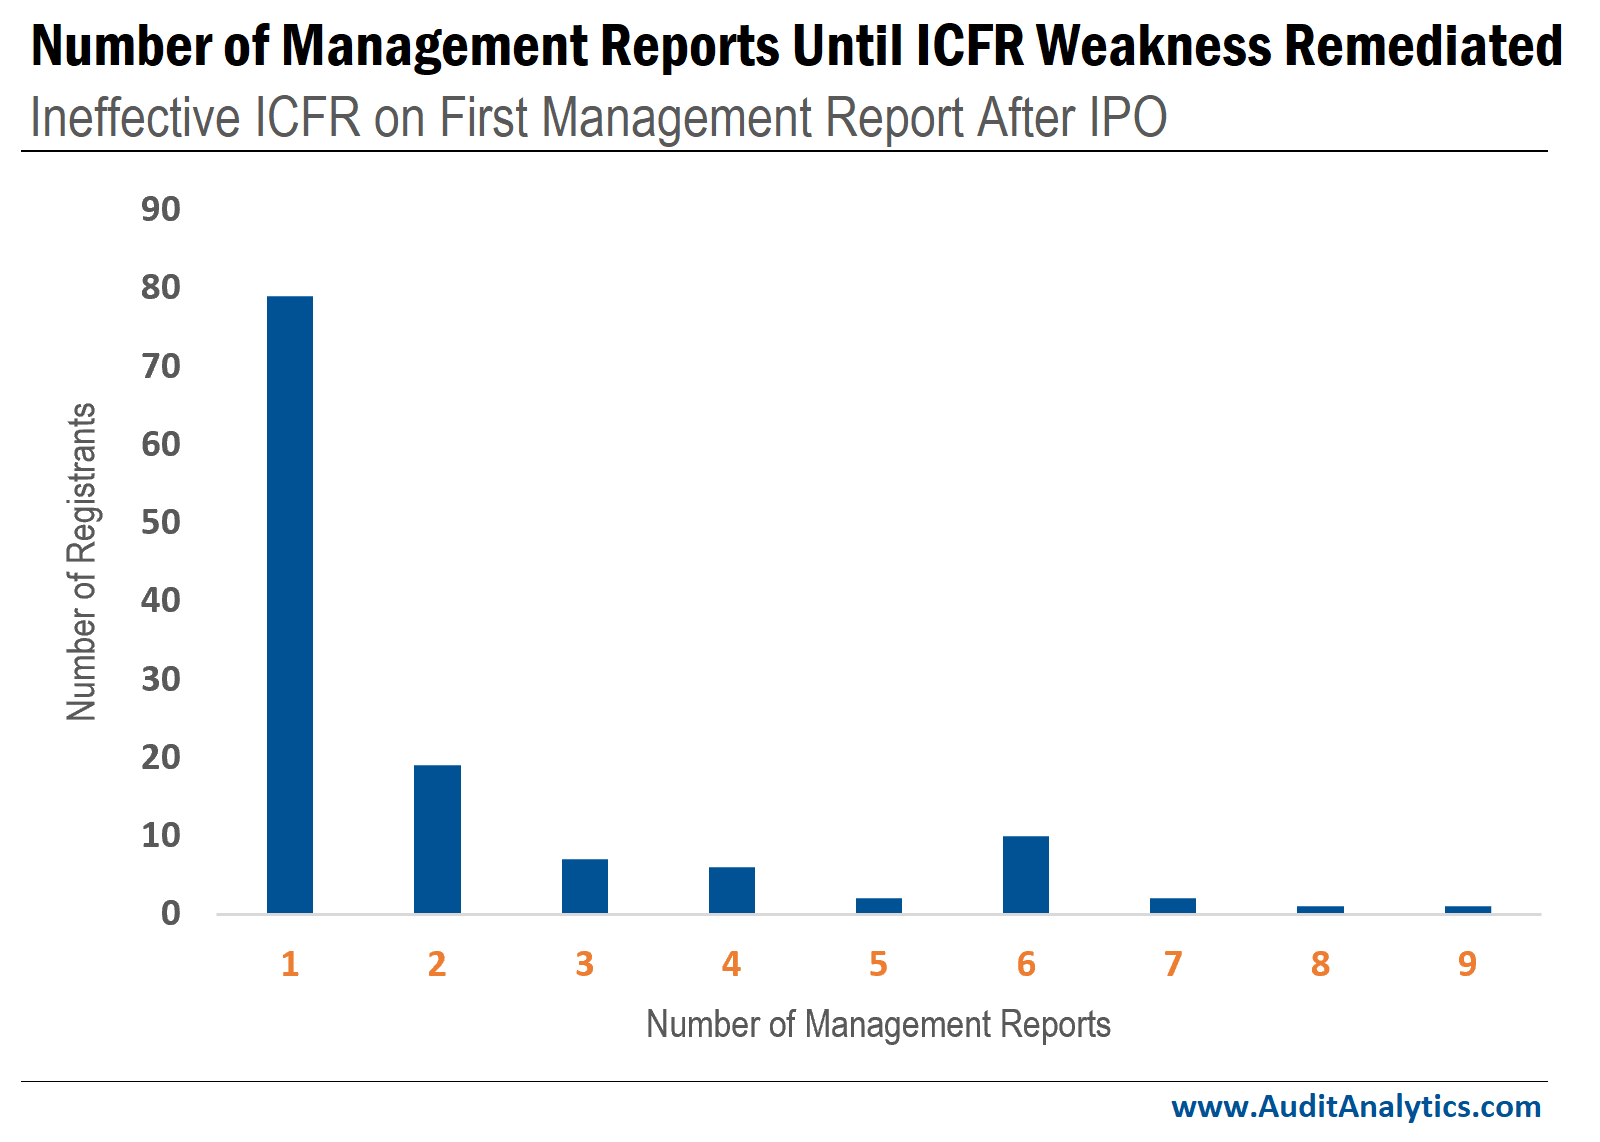 Number of management reports until ICFR weakness remediated after IPO